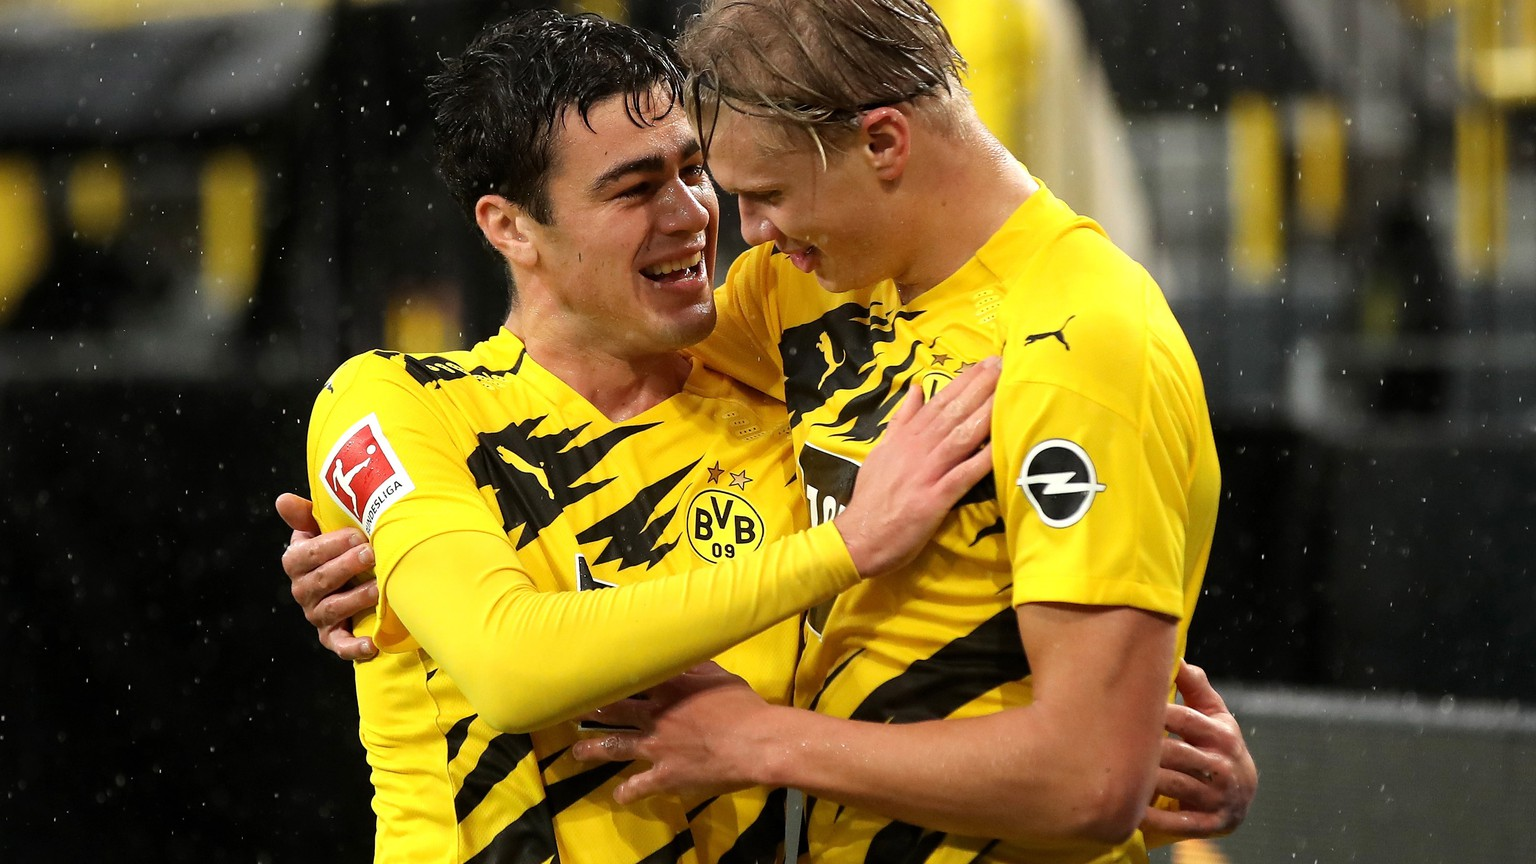 epa08717694 Dortmund's Erling Haaland (R) celebrates scoring the first goal with Dortmund's Giovanni Reyna (L) during the German Bundesliga soccer match between Borussia Dortmund and SC Freiburg in Dortmund, Germany, 03 October 2020.  EPA/FRIEDEMANN VOGEL CONDITIONS - ATTENTION: The DFL regulations prohibit any use of photographs as image sequences and/or quasi-video.